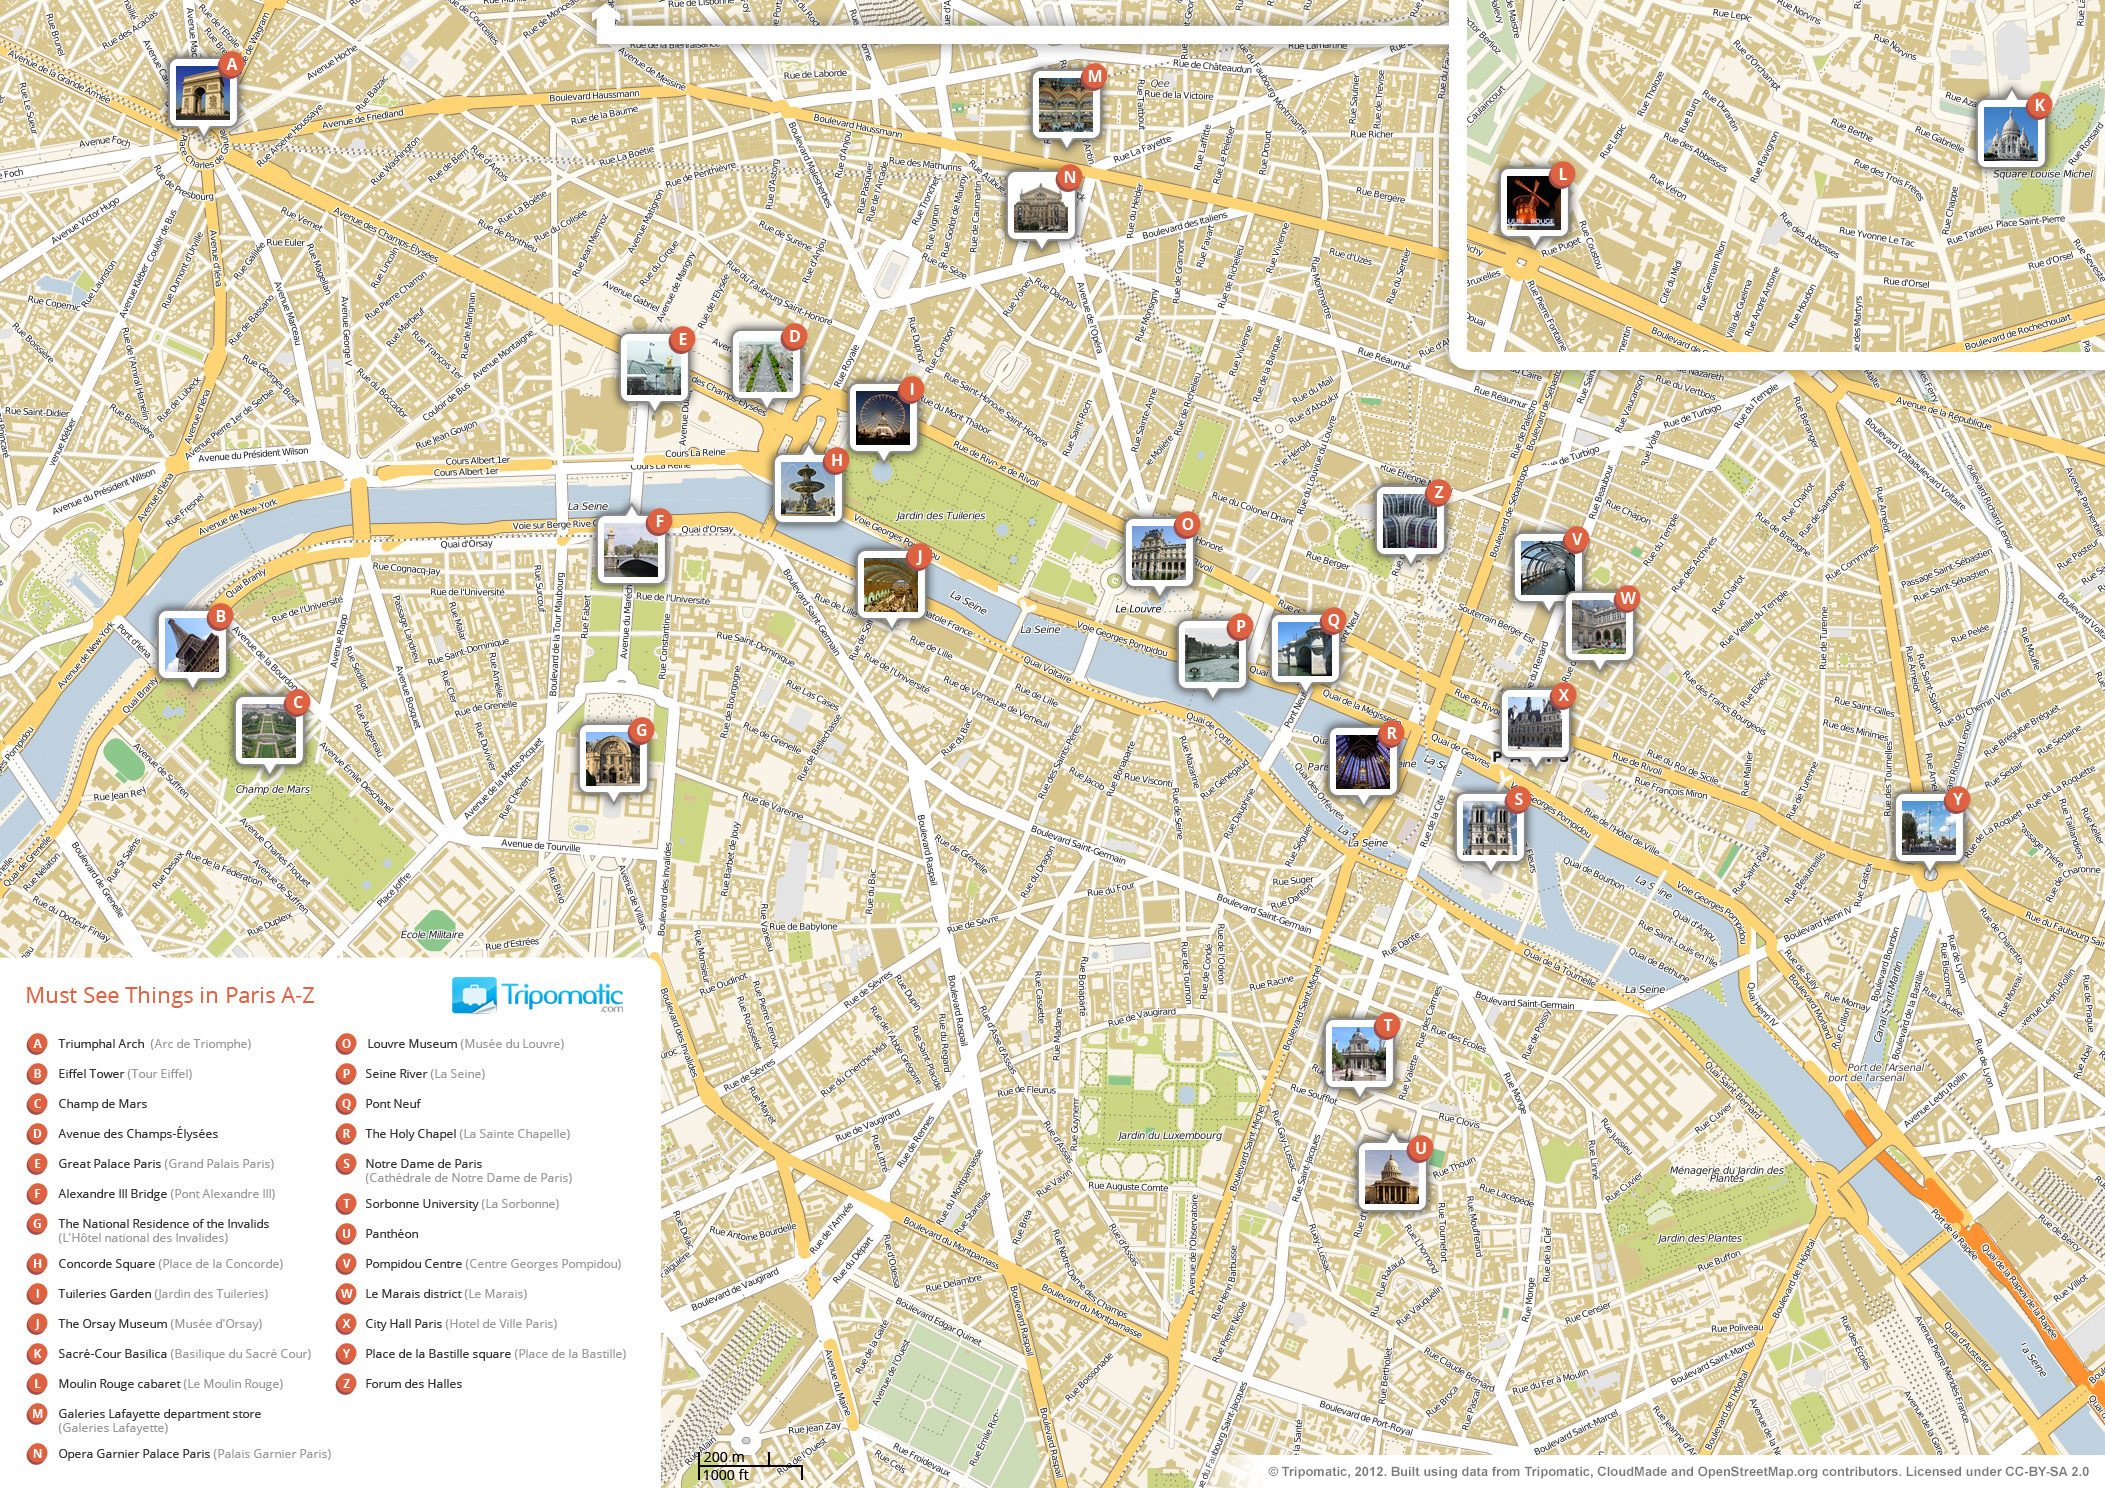 File:Paris printable tourist attractions map.jpg - Wikimedia Commons